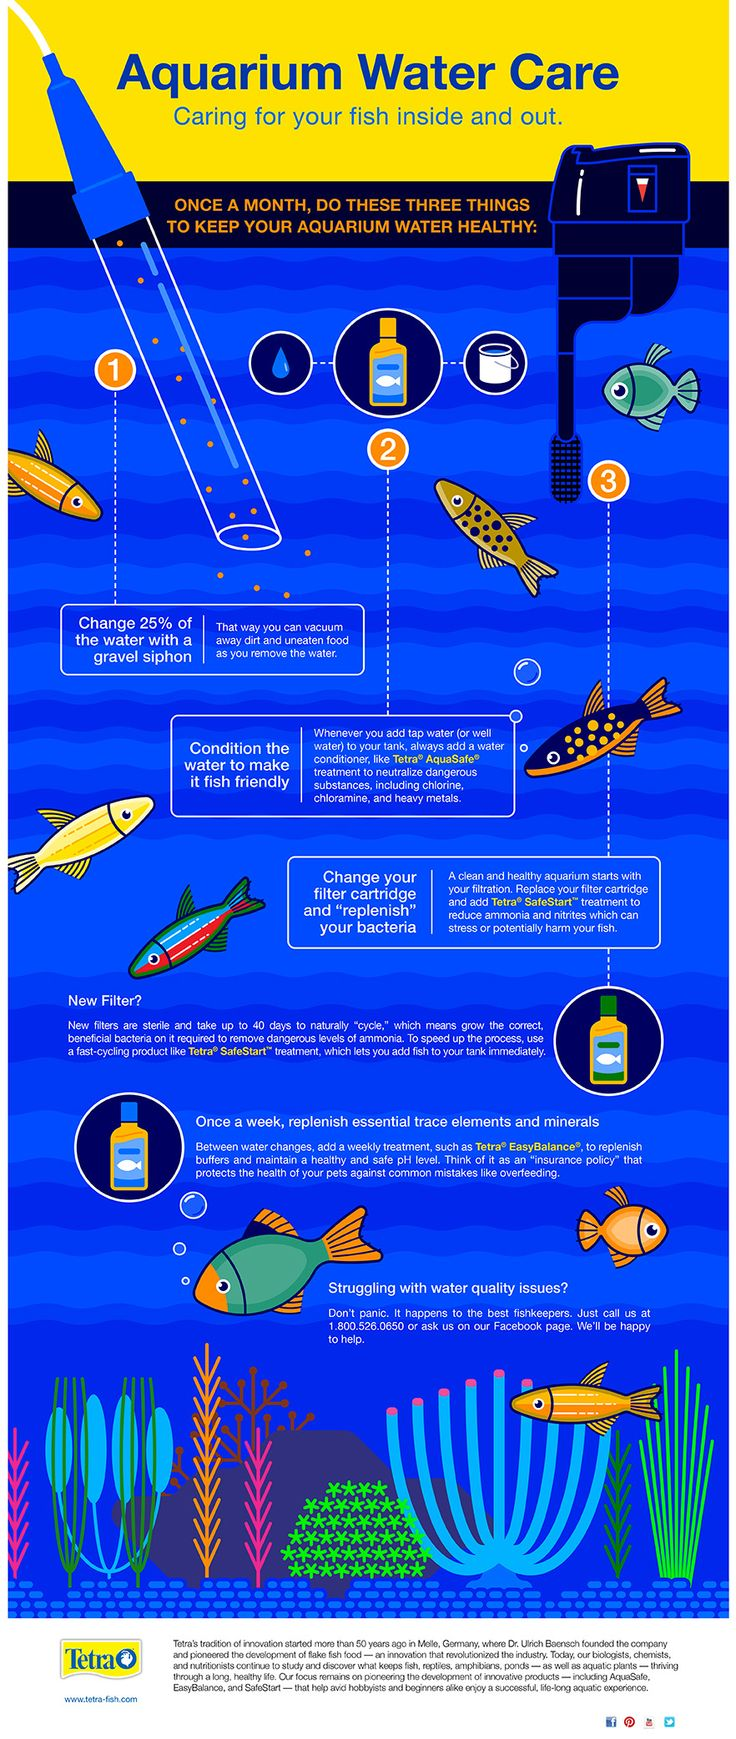 Tetra – Caring for your fish inside and out.